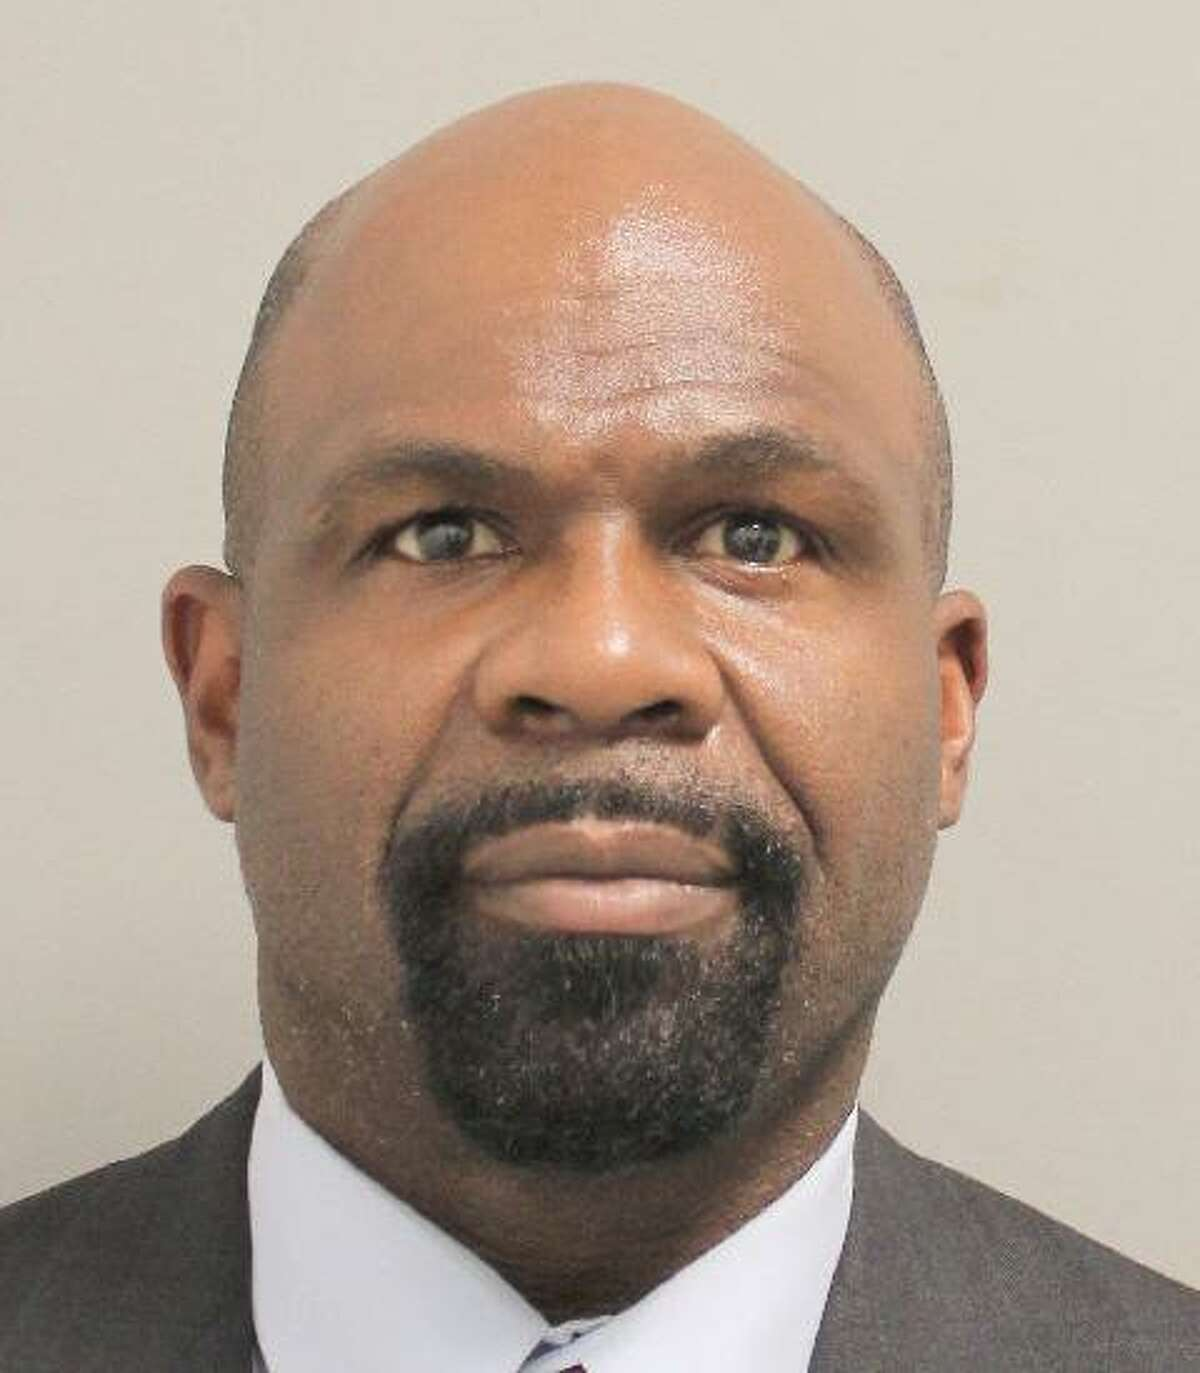 Mugshot of Hodgie Armstrong, one of four additional former Houston Police narcotics officers Kim Ogg charged with crimes stemming from an investigation into the deadly 2019 drug raid at 7815 Harding street that killed two homeowners.